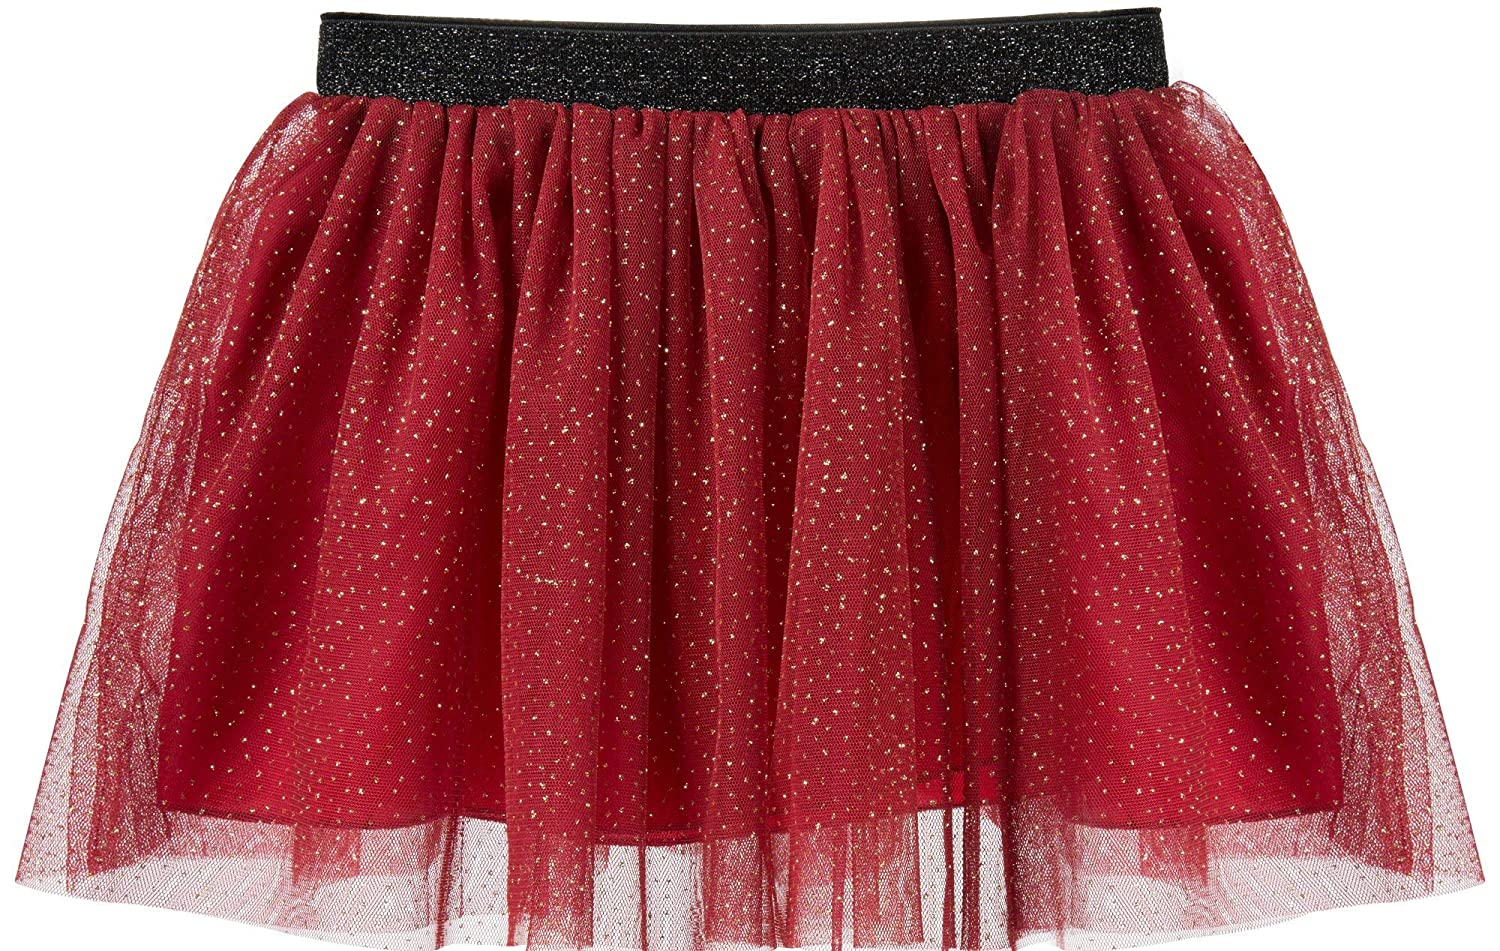 ISPED Girls Tutu Skirt Fluffy Ballet Dance Princess Layered Ruffled Sequins Tutu Gymnastics for Toddler/Little Girl YM16